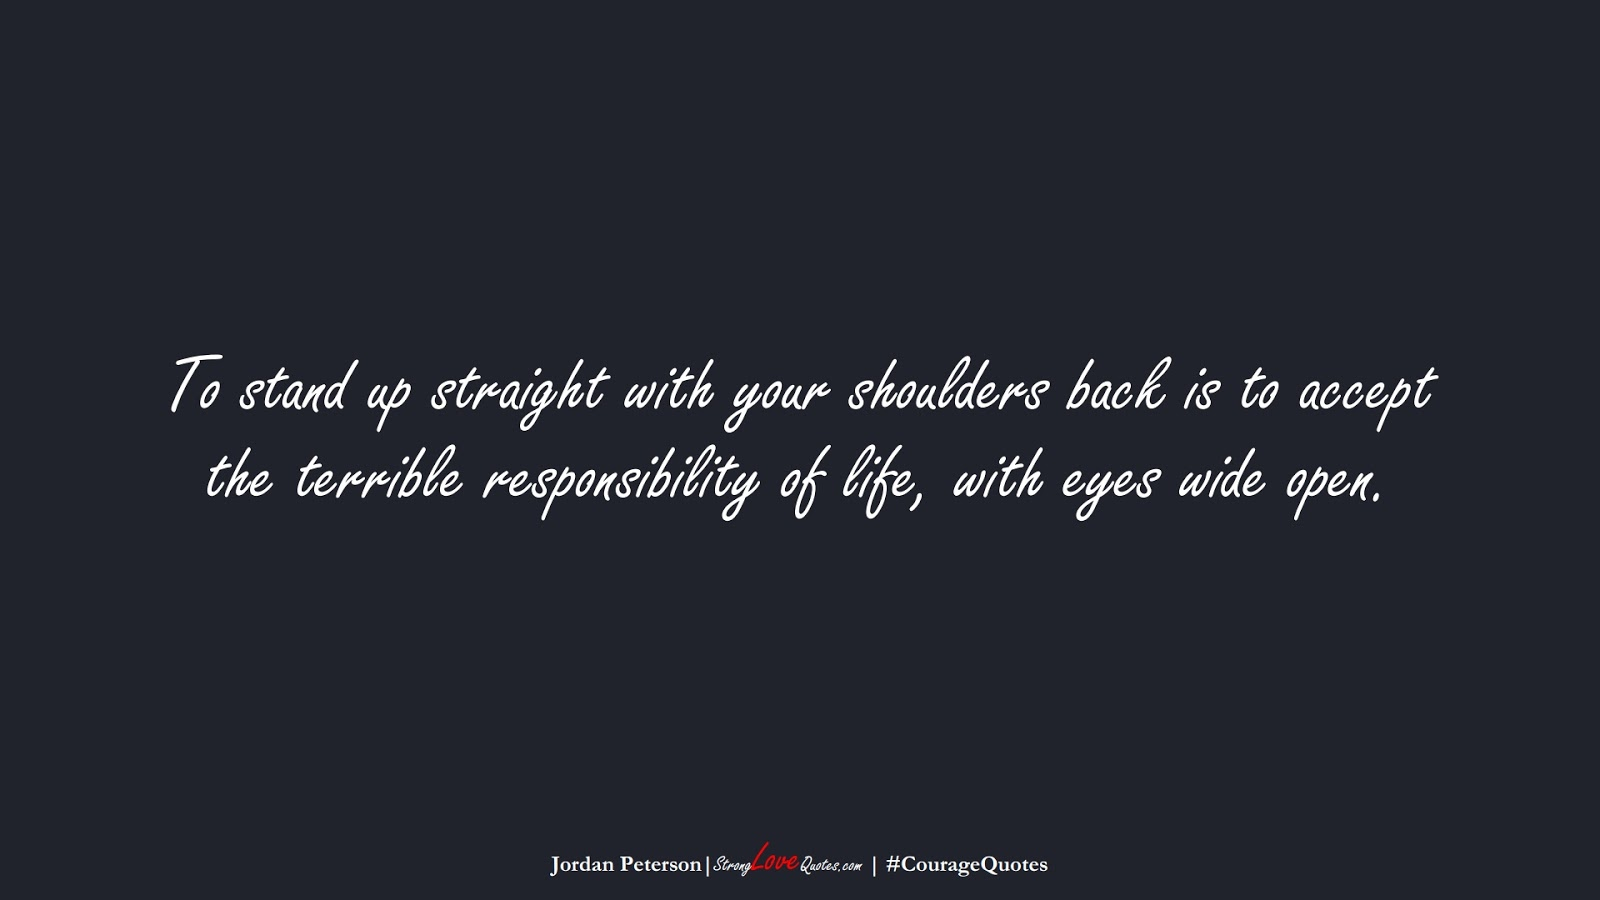 To stand up straight with your shoulders back is to accept the terrible responsibility of life, with eyes wide open. (Jordan Peterson);  #CourageQuotes